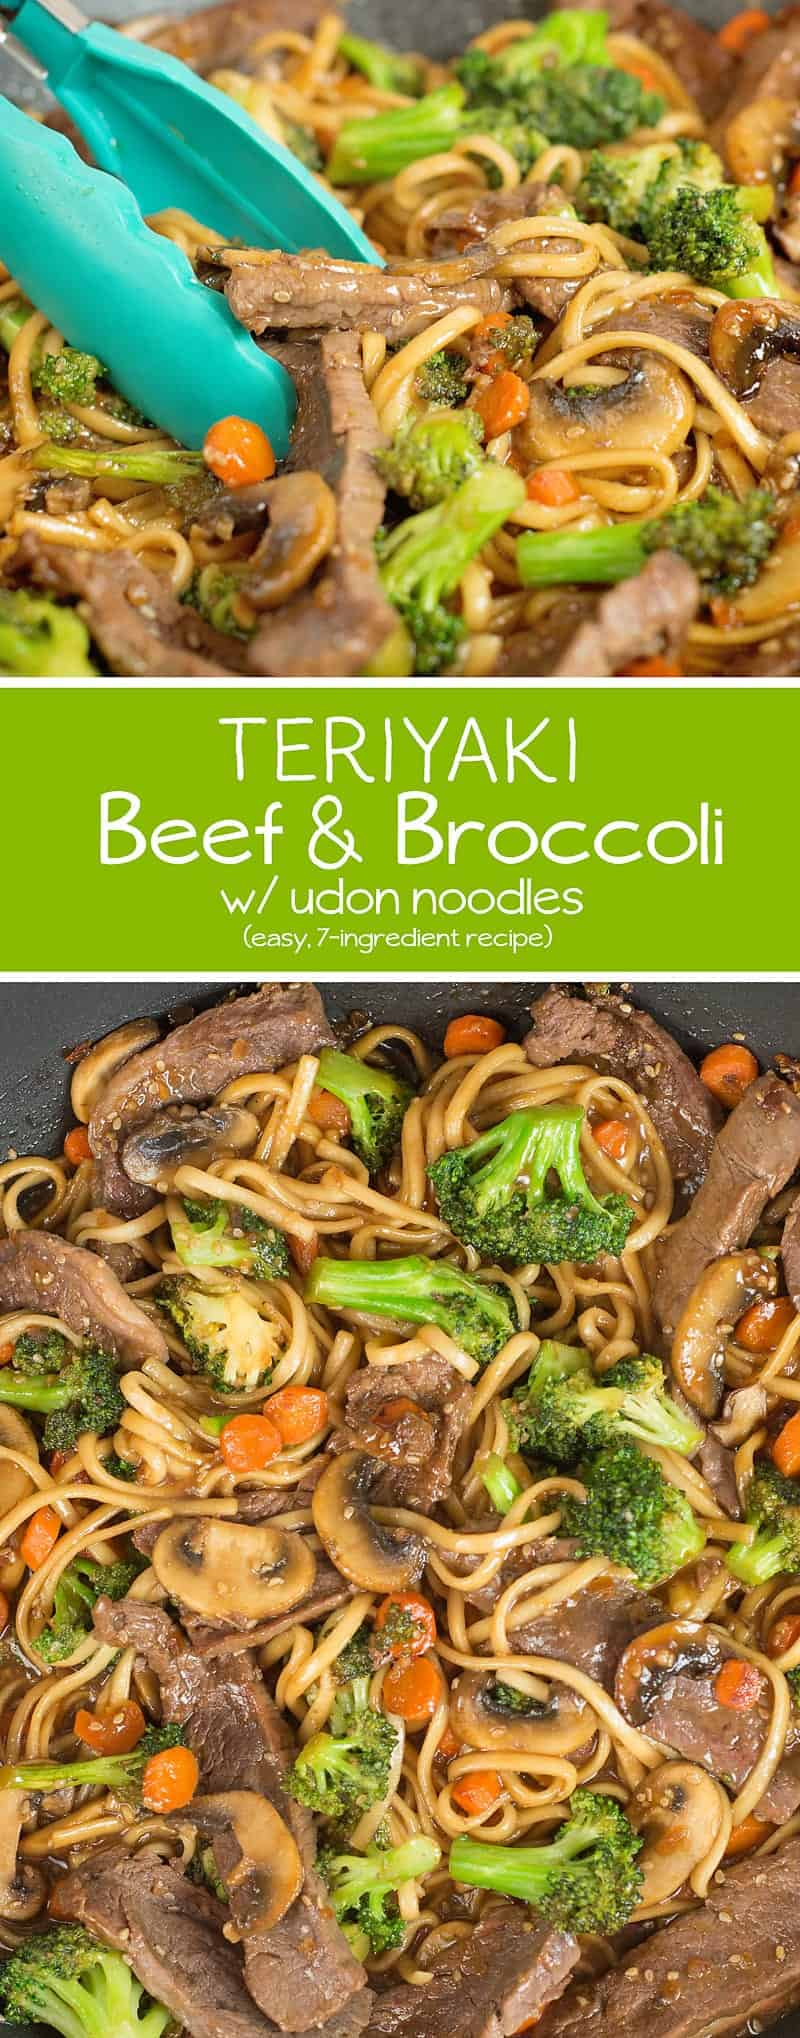 This Teriyaki Beef and Broccoli w/ Udon Noodles is so easy to make and perfect for busy nights!